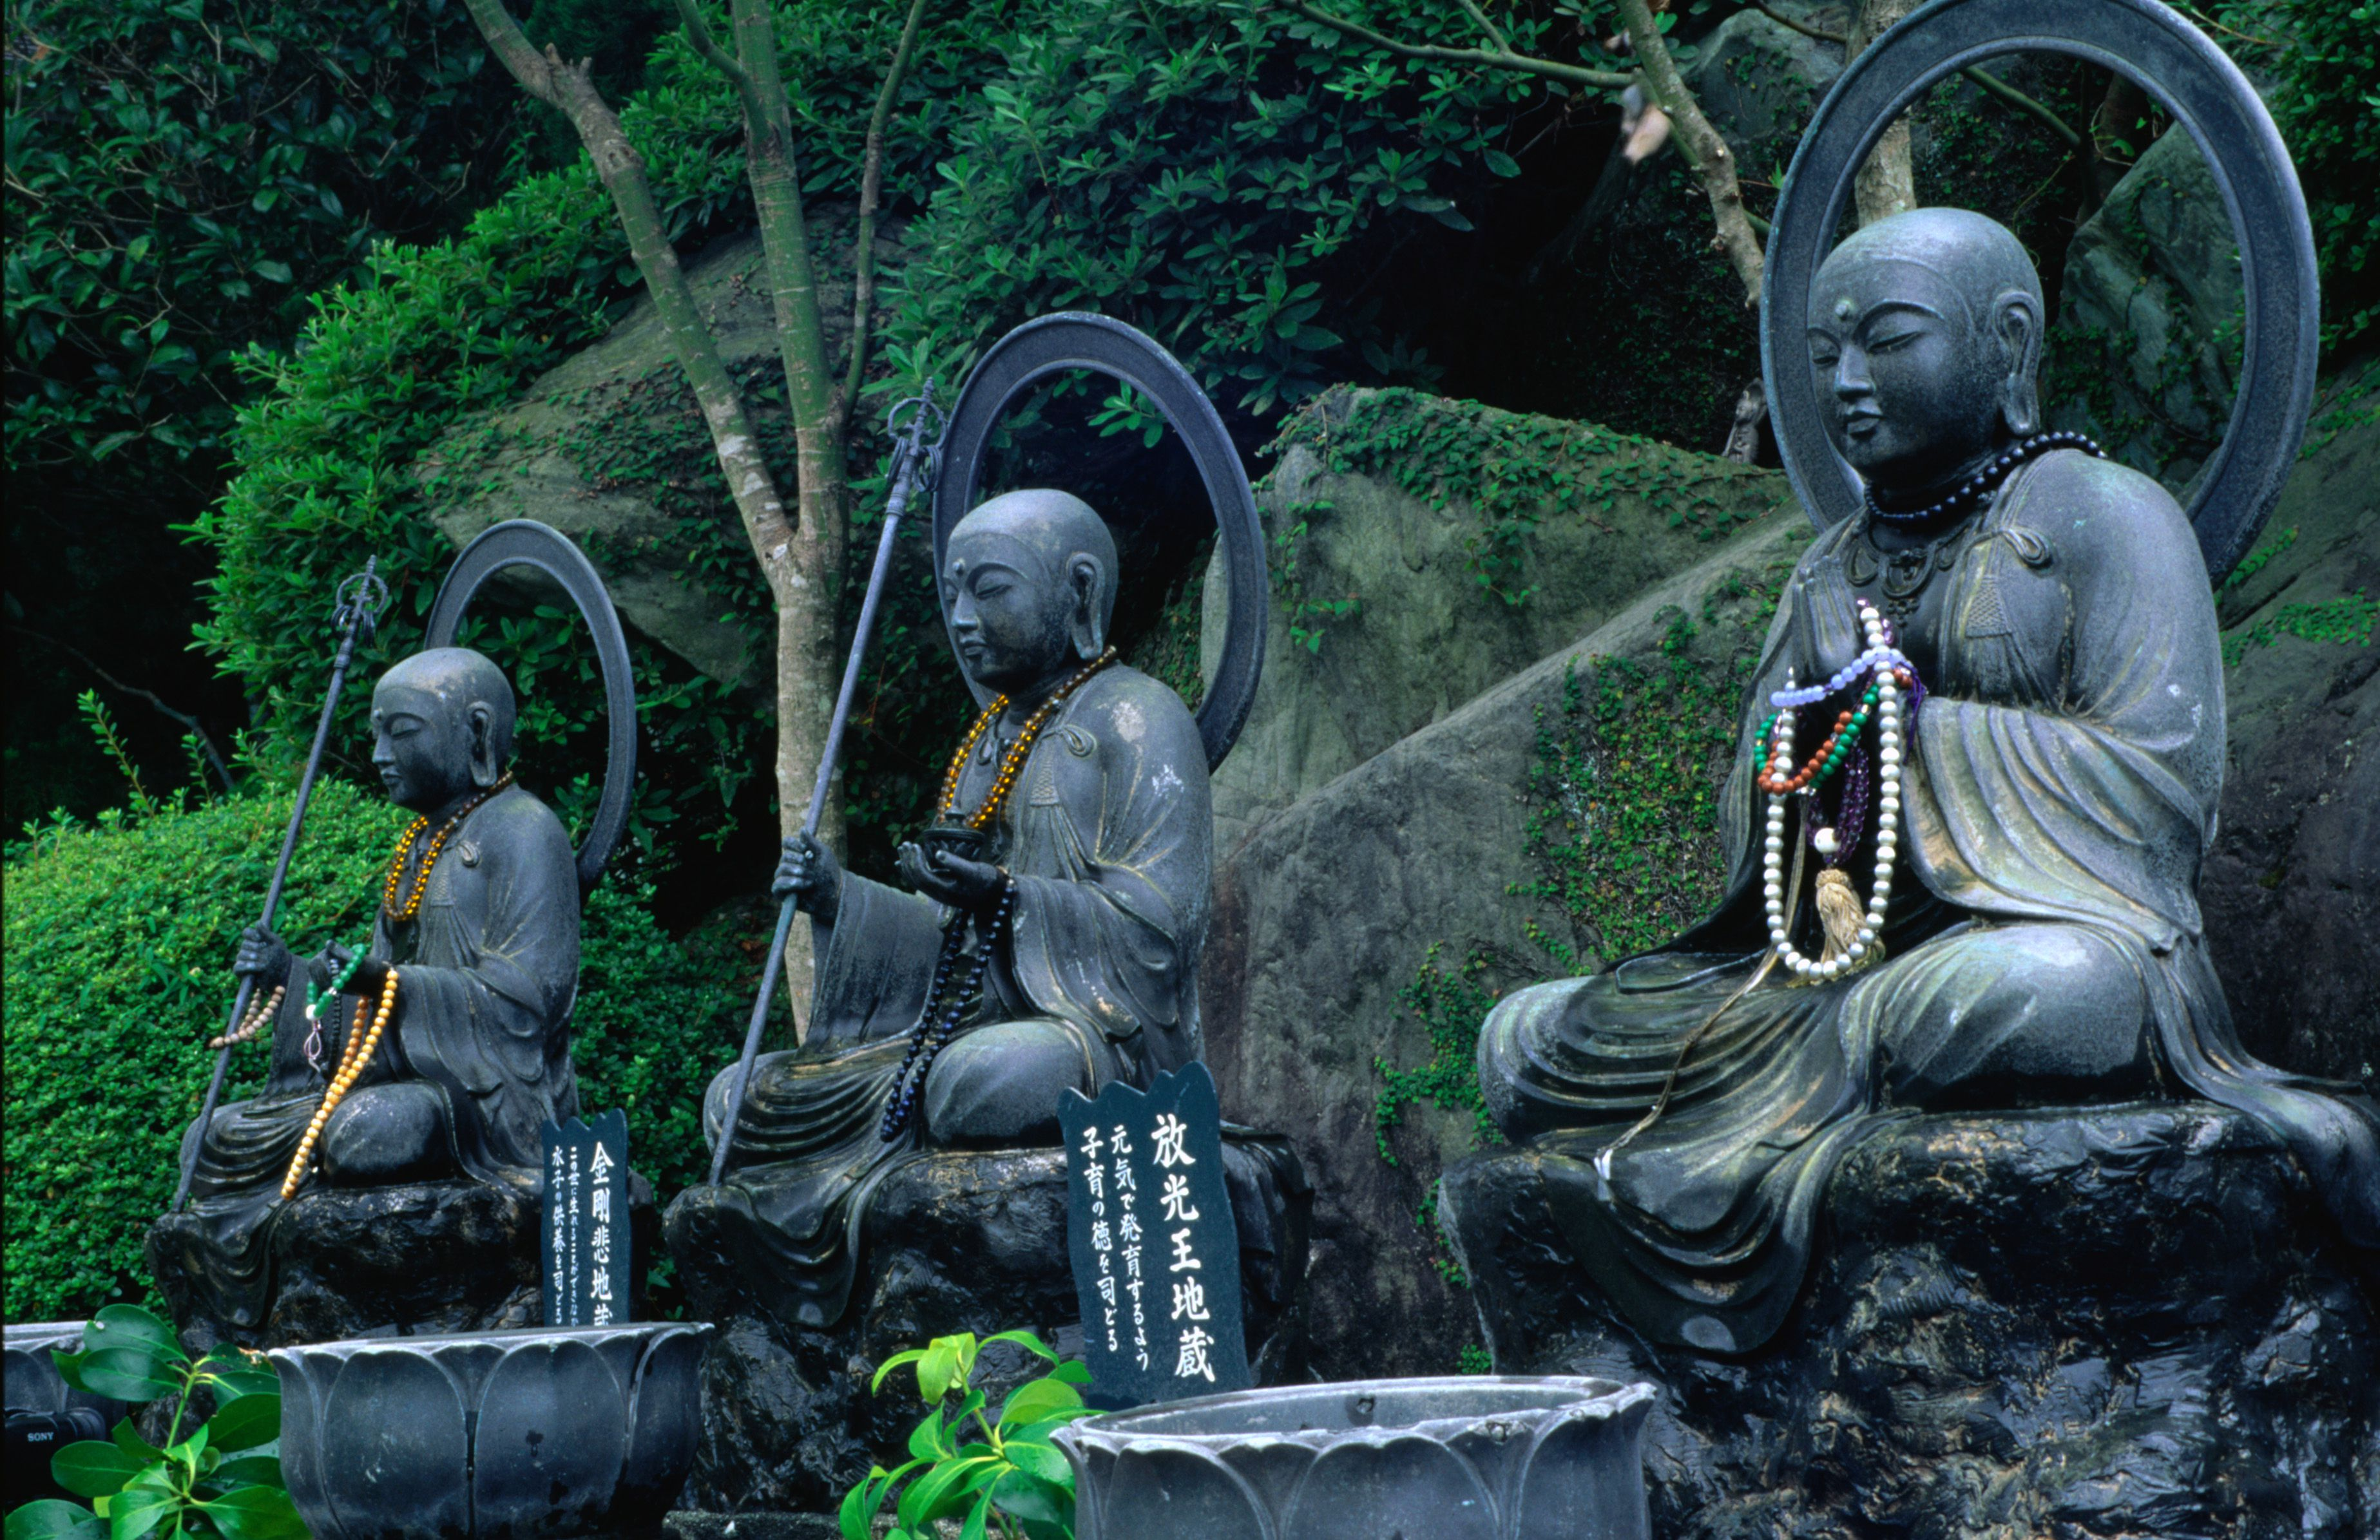 Statues depicting the disciples of the Buddha at Daigan-ji, a temple in Japan.